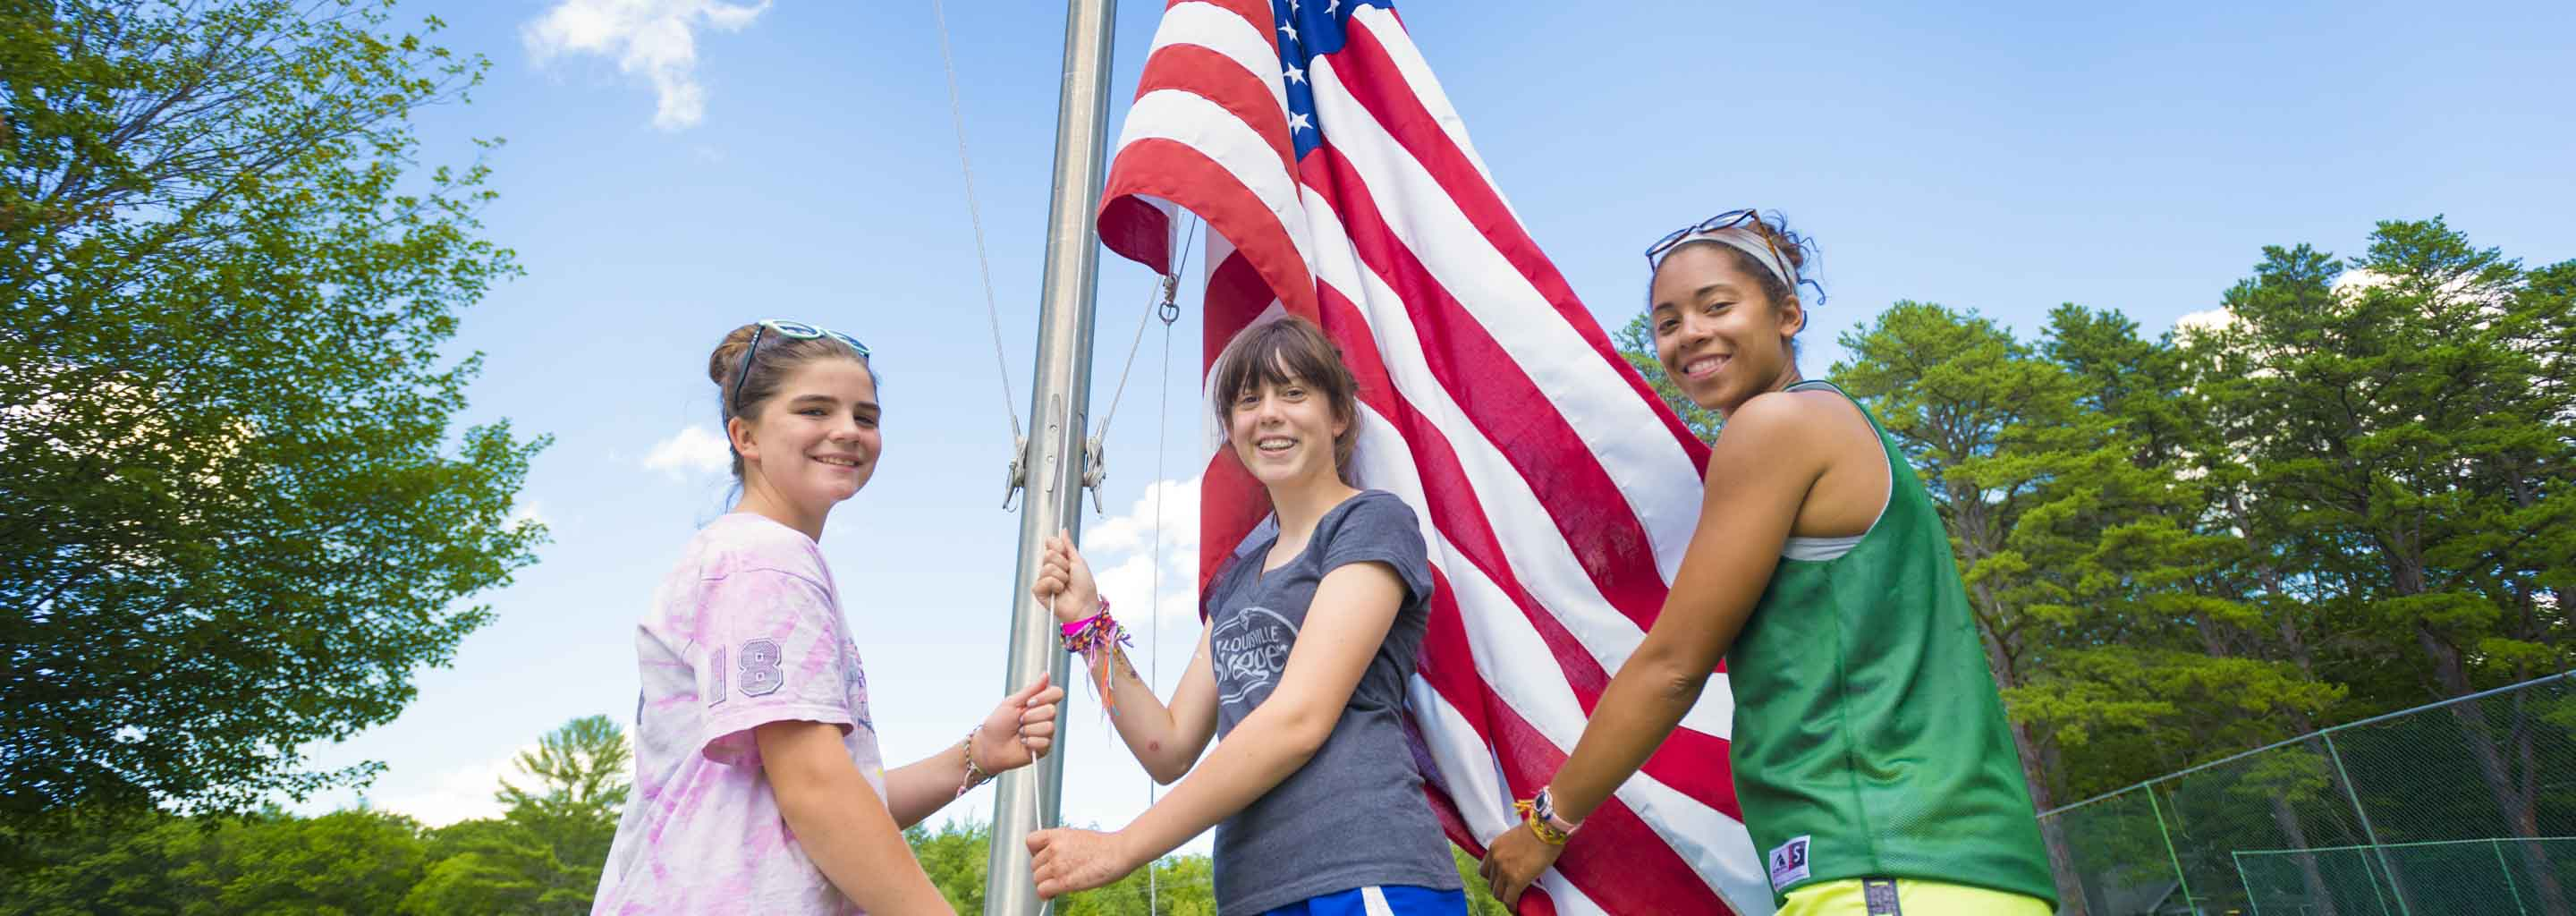 Counselors Raise an American Flag at Summer Camp